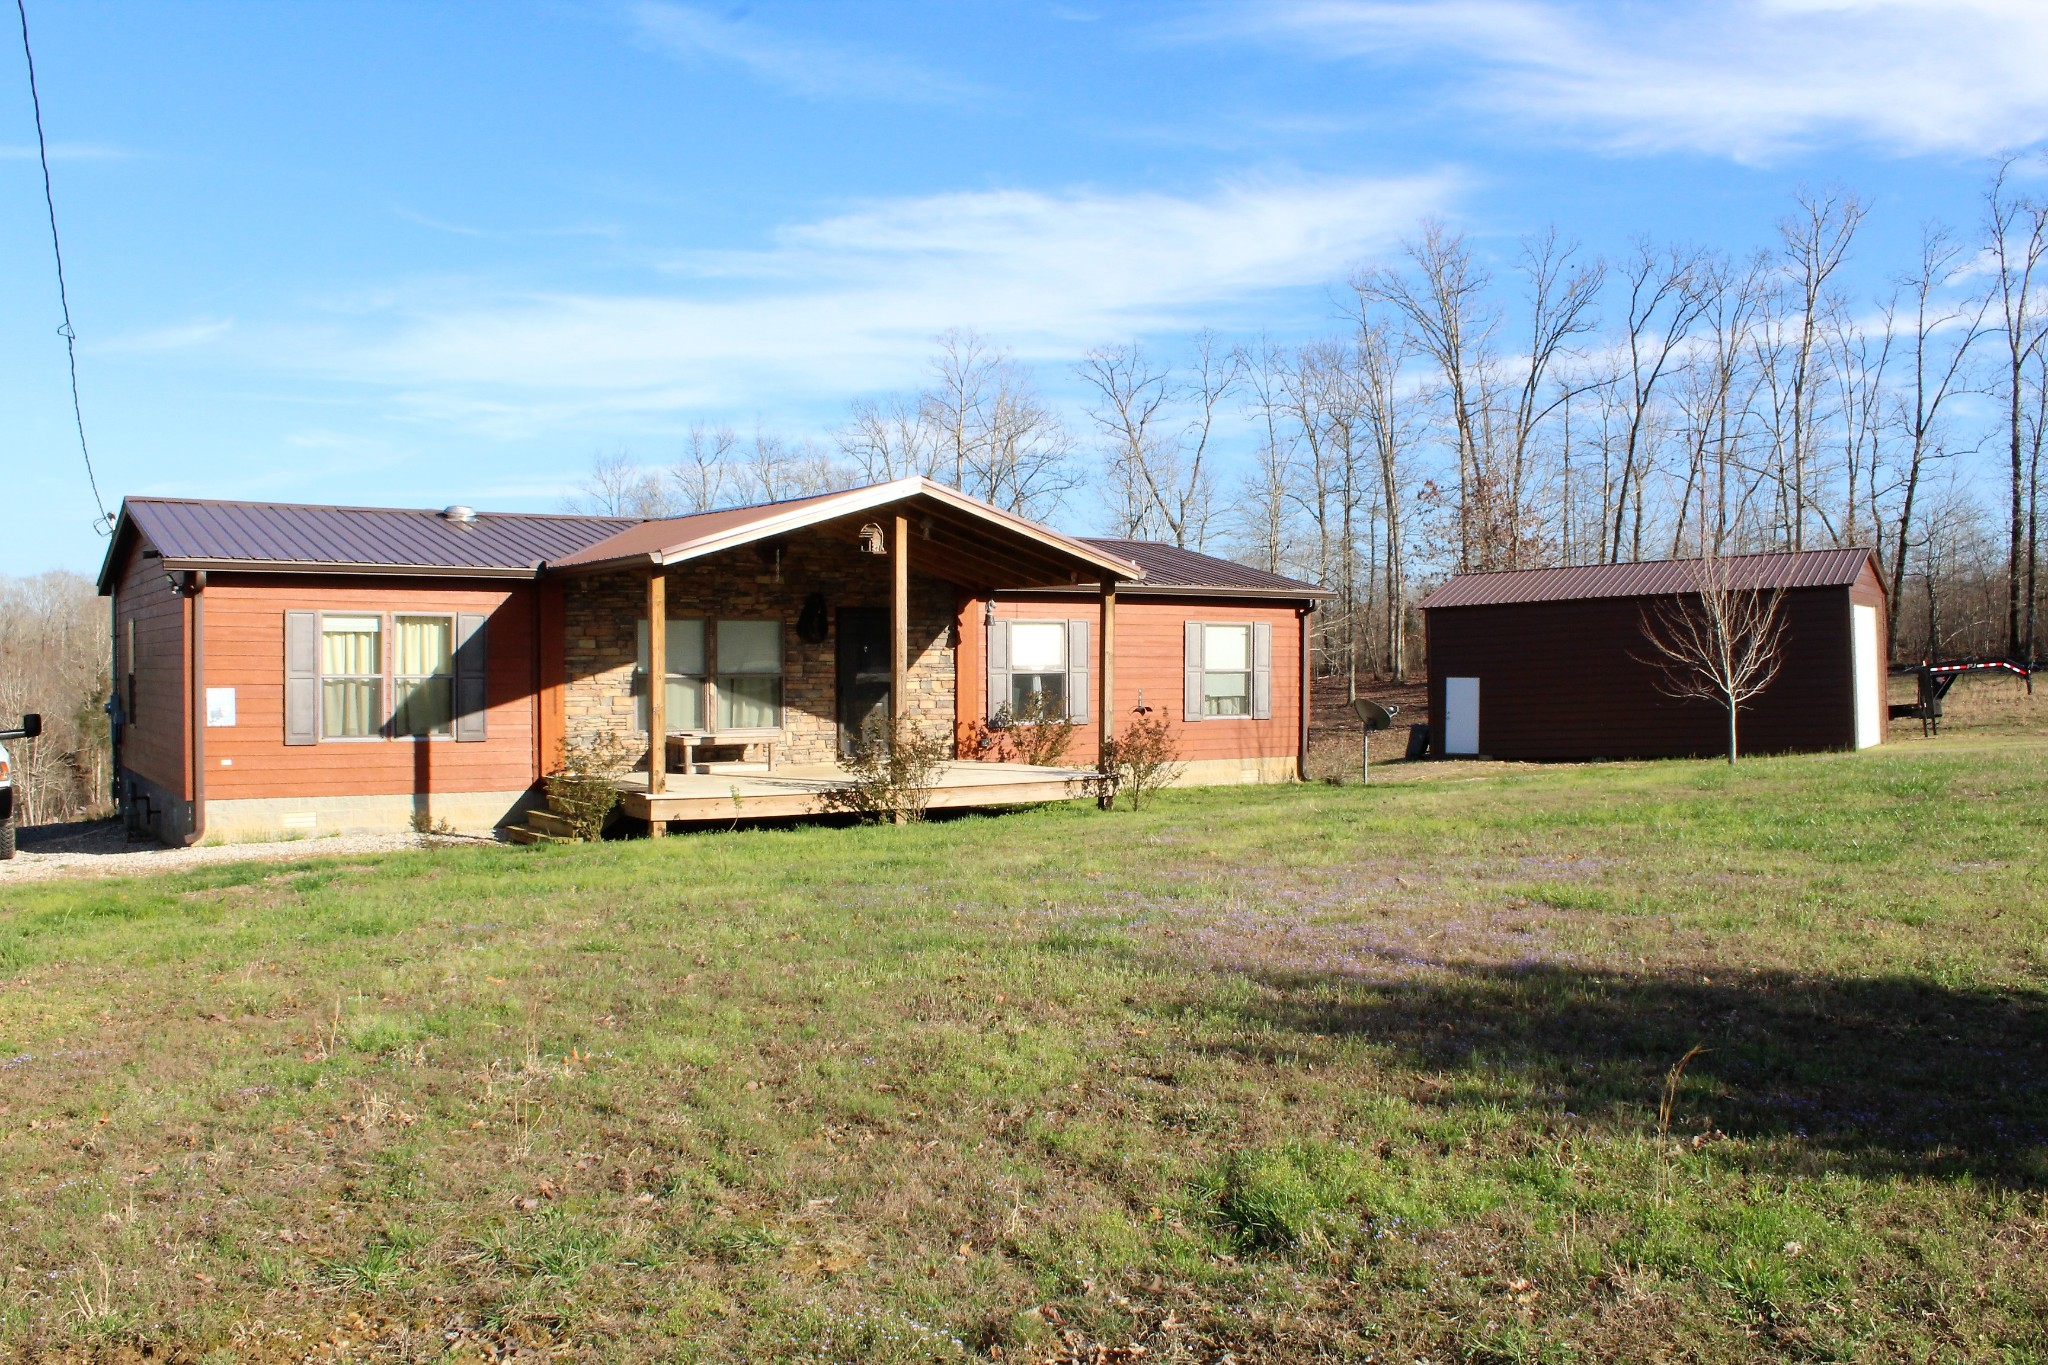 1538 Tummins Rd, MC EWEN, TN 37101 - MC EWEN, TN real estate listing